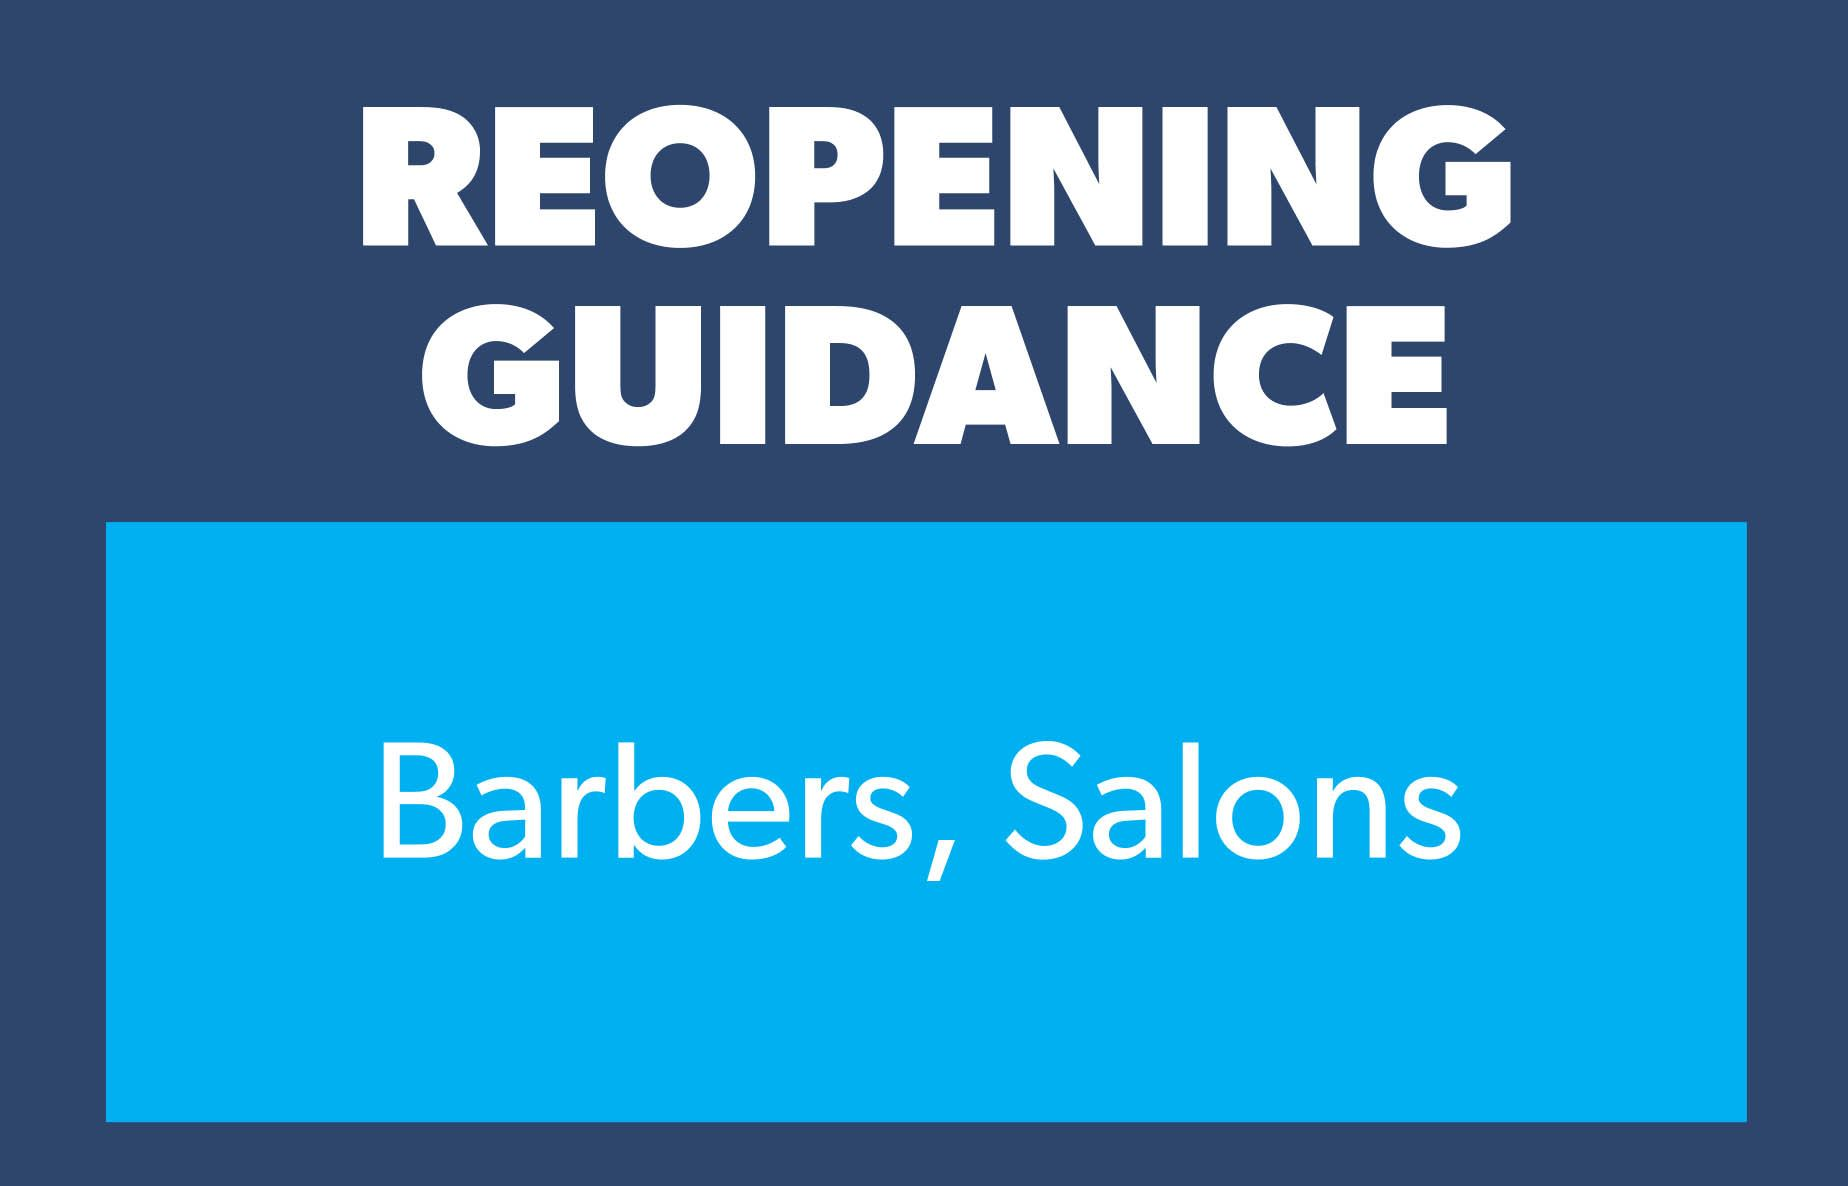 Guidance barbers salons